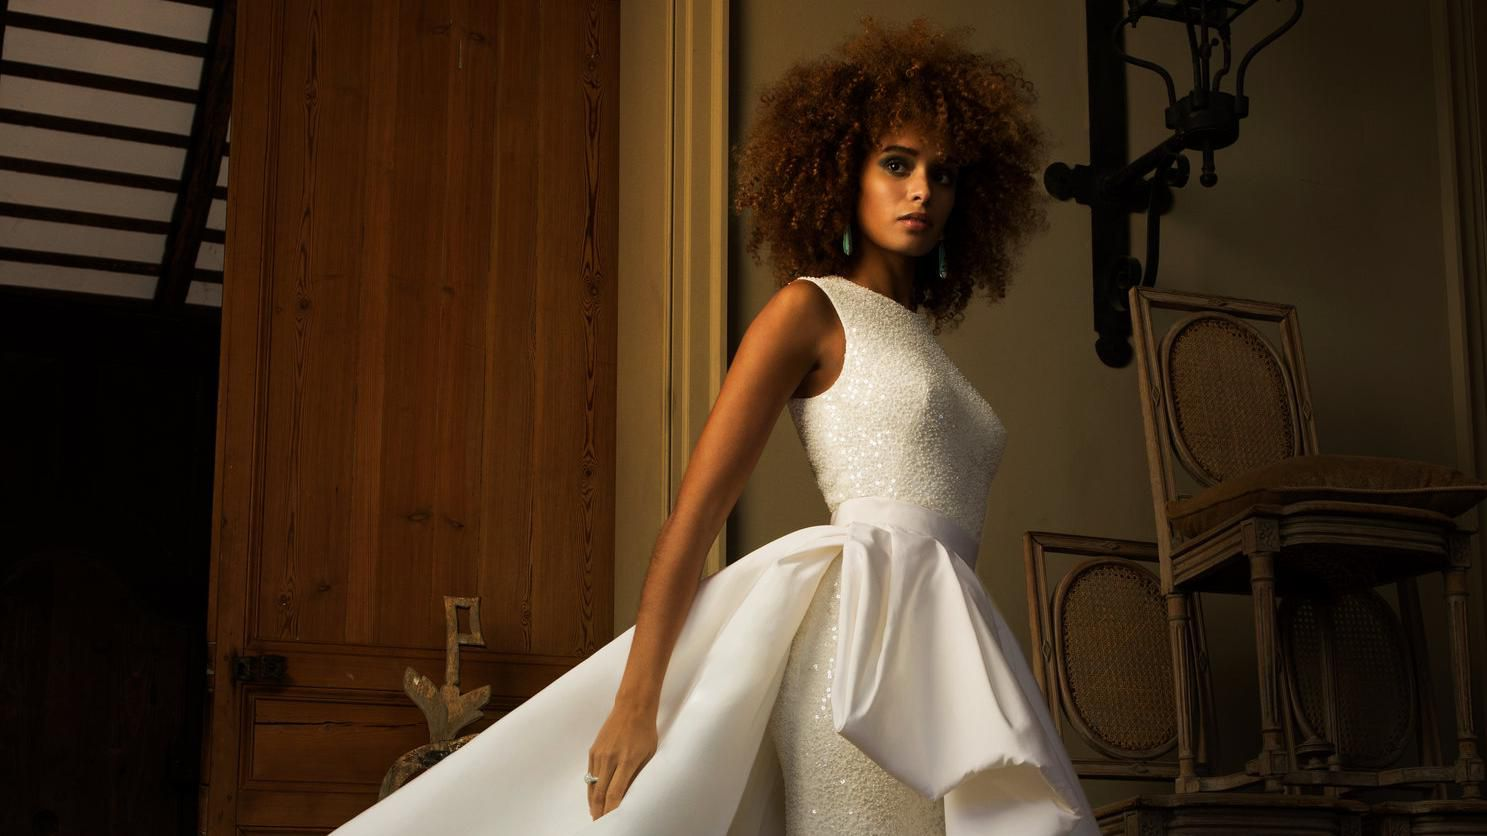 20 Sparkly Wedding Dresses for the Glamorous Bride